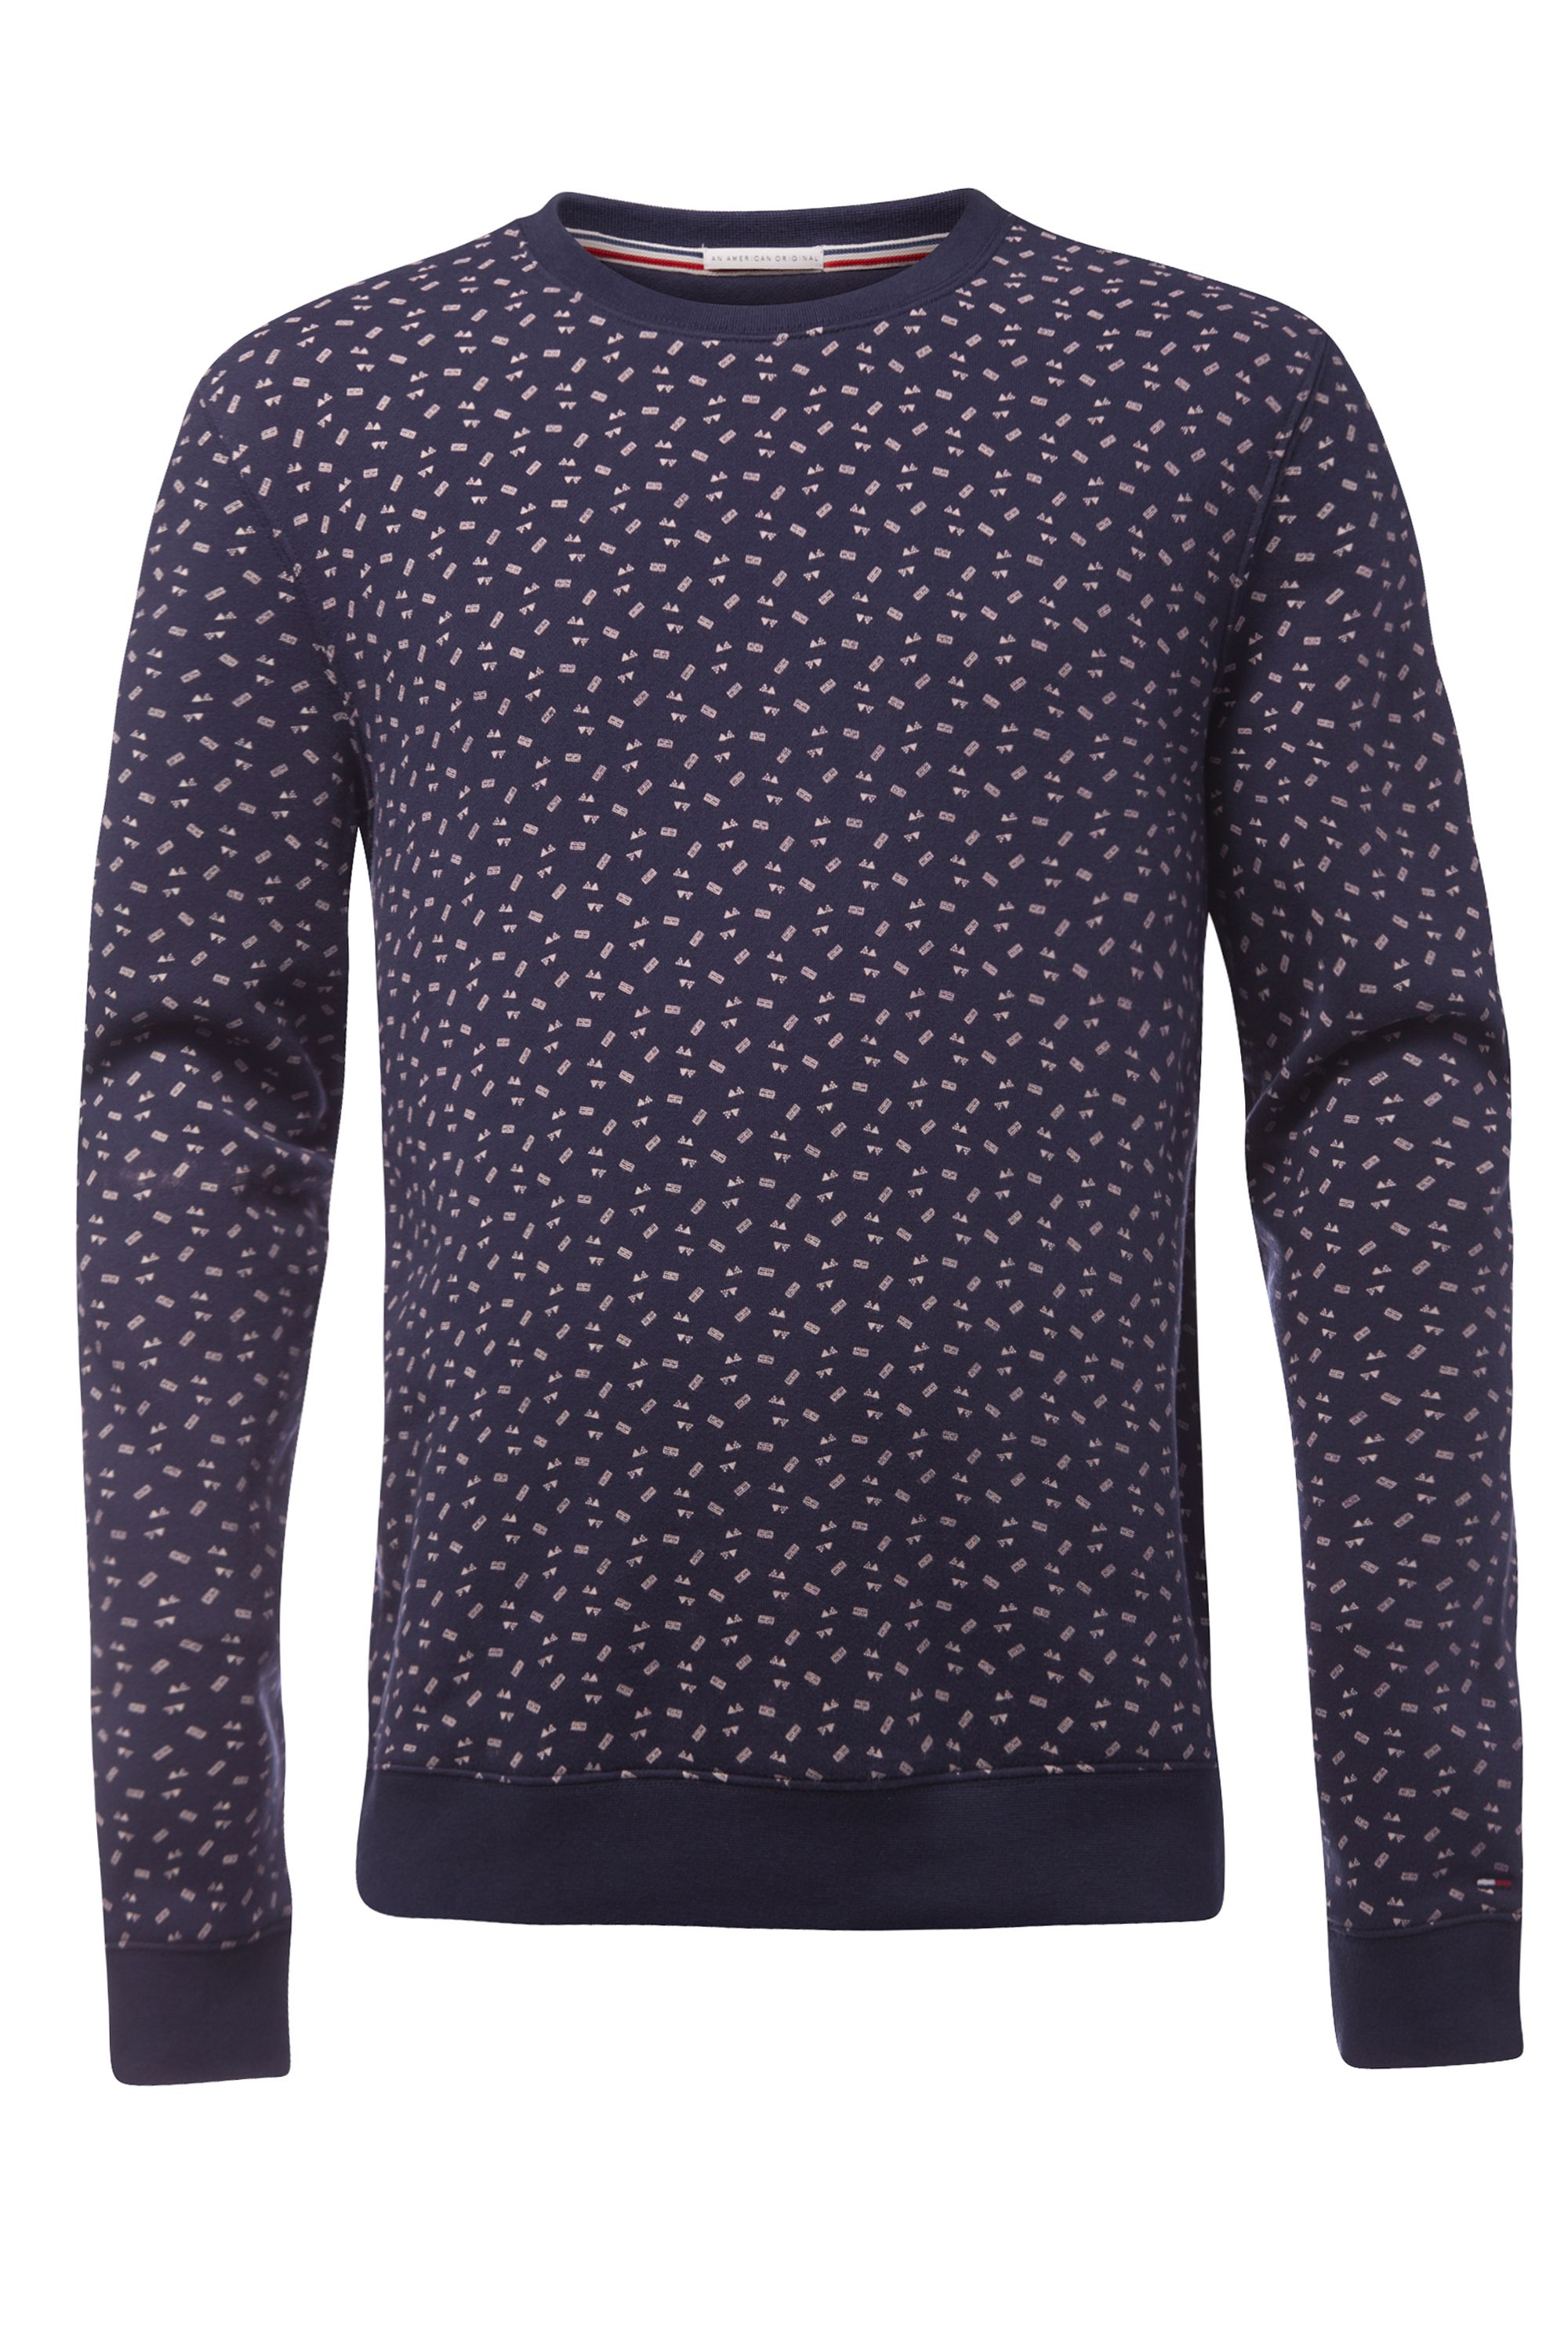 Men's Tommy Hilfiger printed sweater, Blue